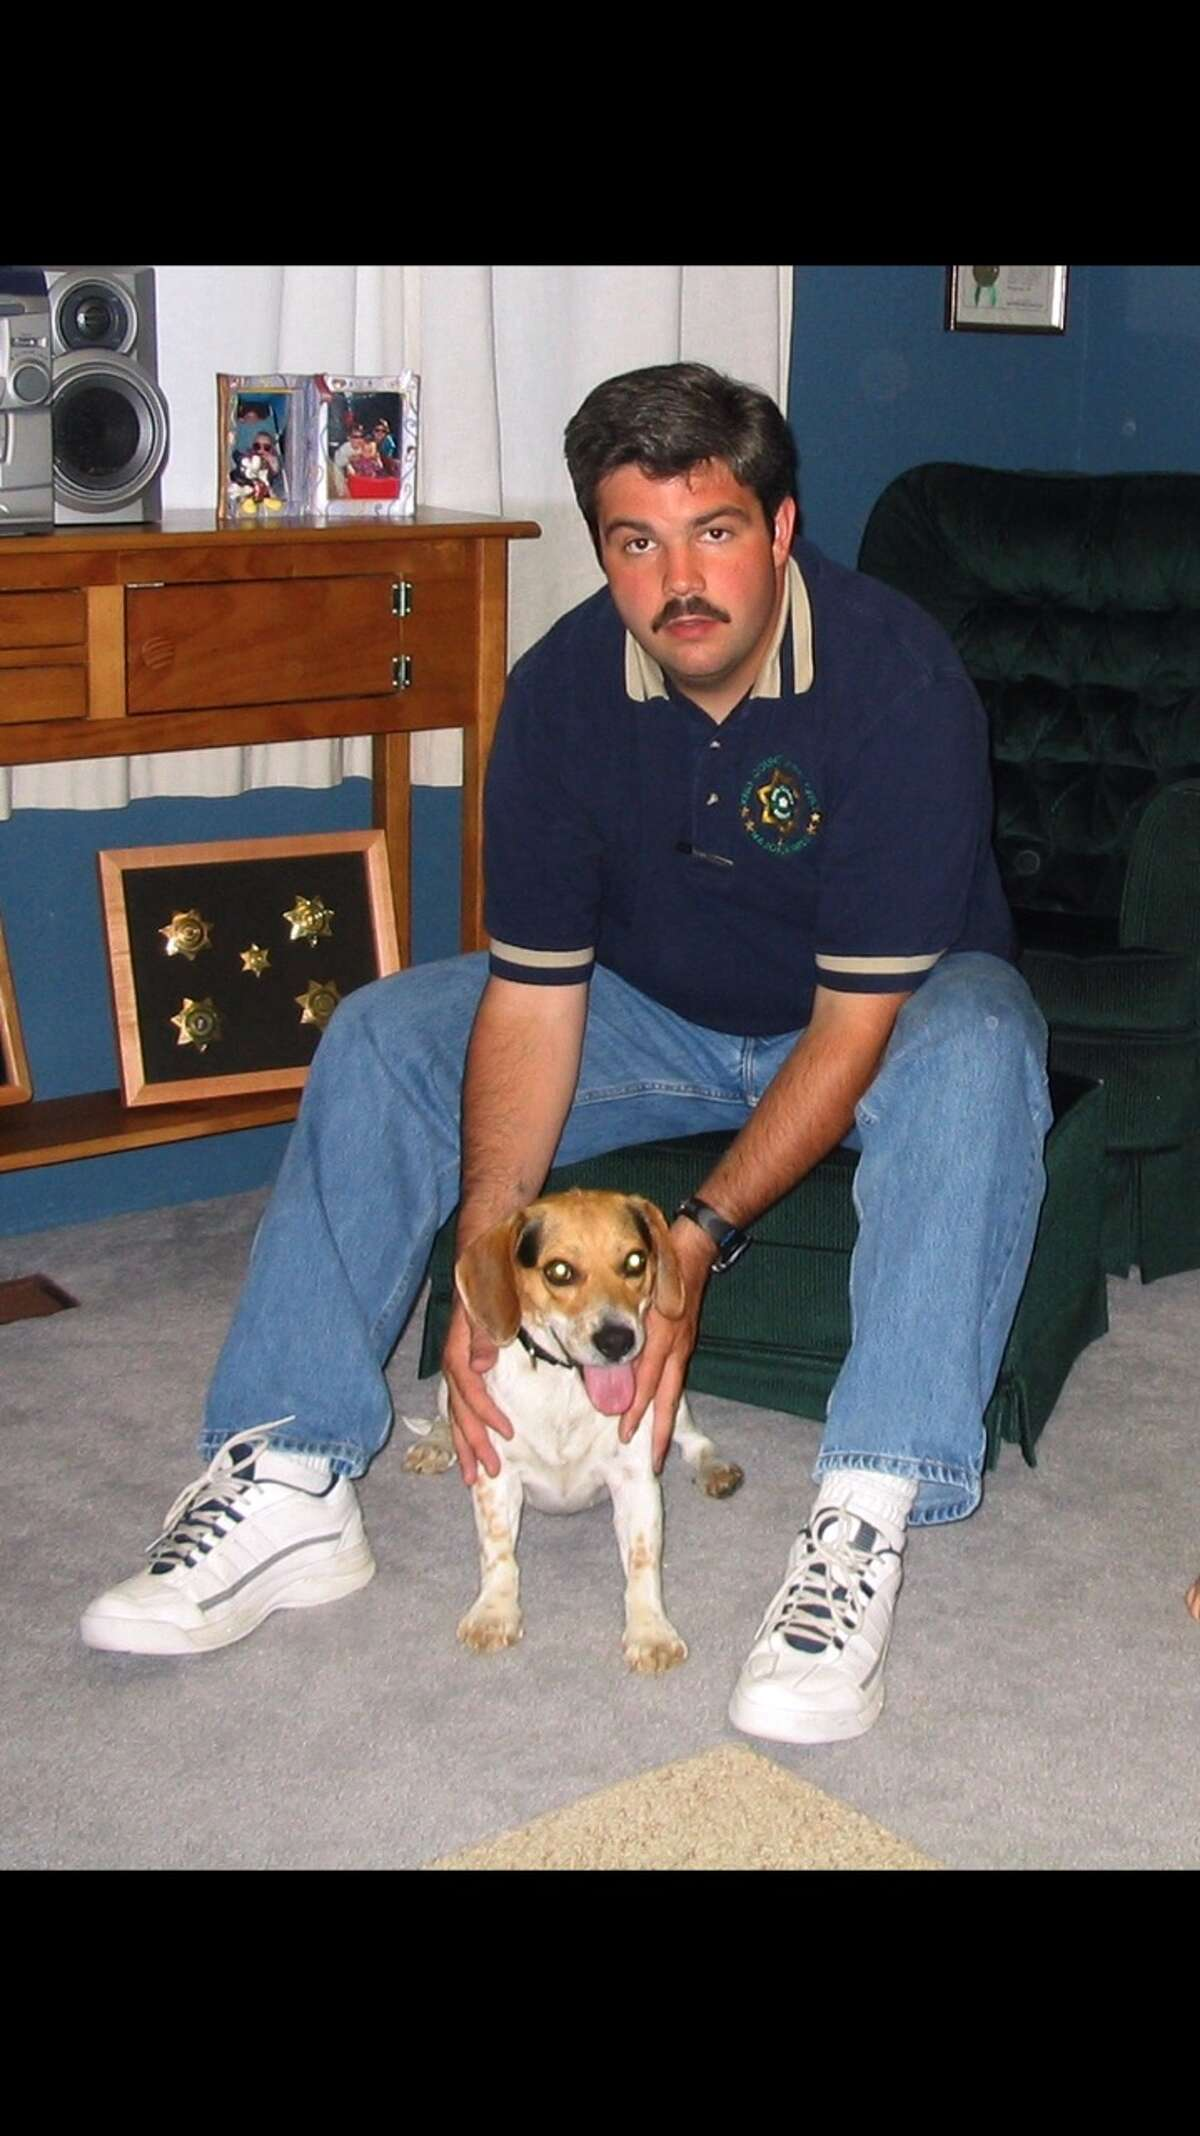 Scott Tompkins adopted a dog in 2003 that belonged to a couple accused of serial slayings in Raymond, Wash. Knowing the dog would likely be euthanized, he took the pup in, himself.